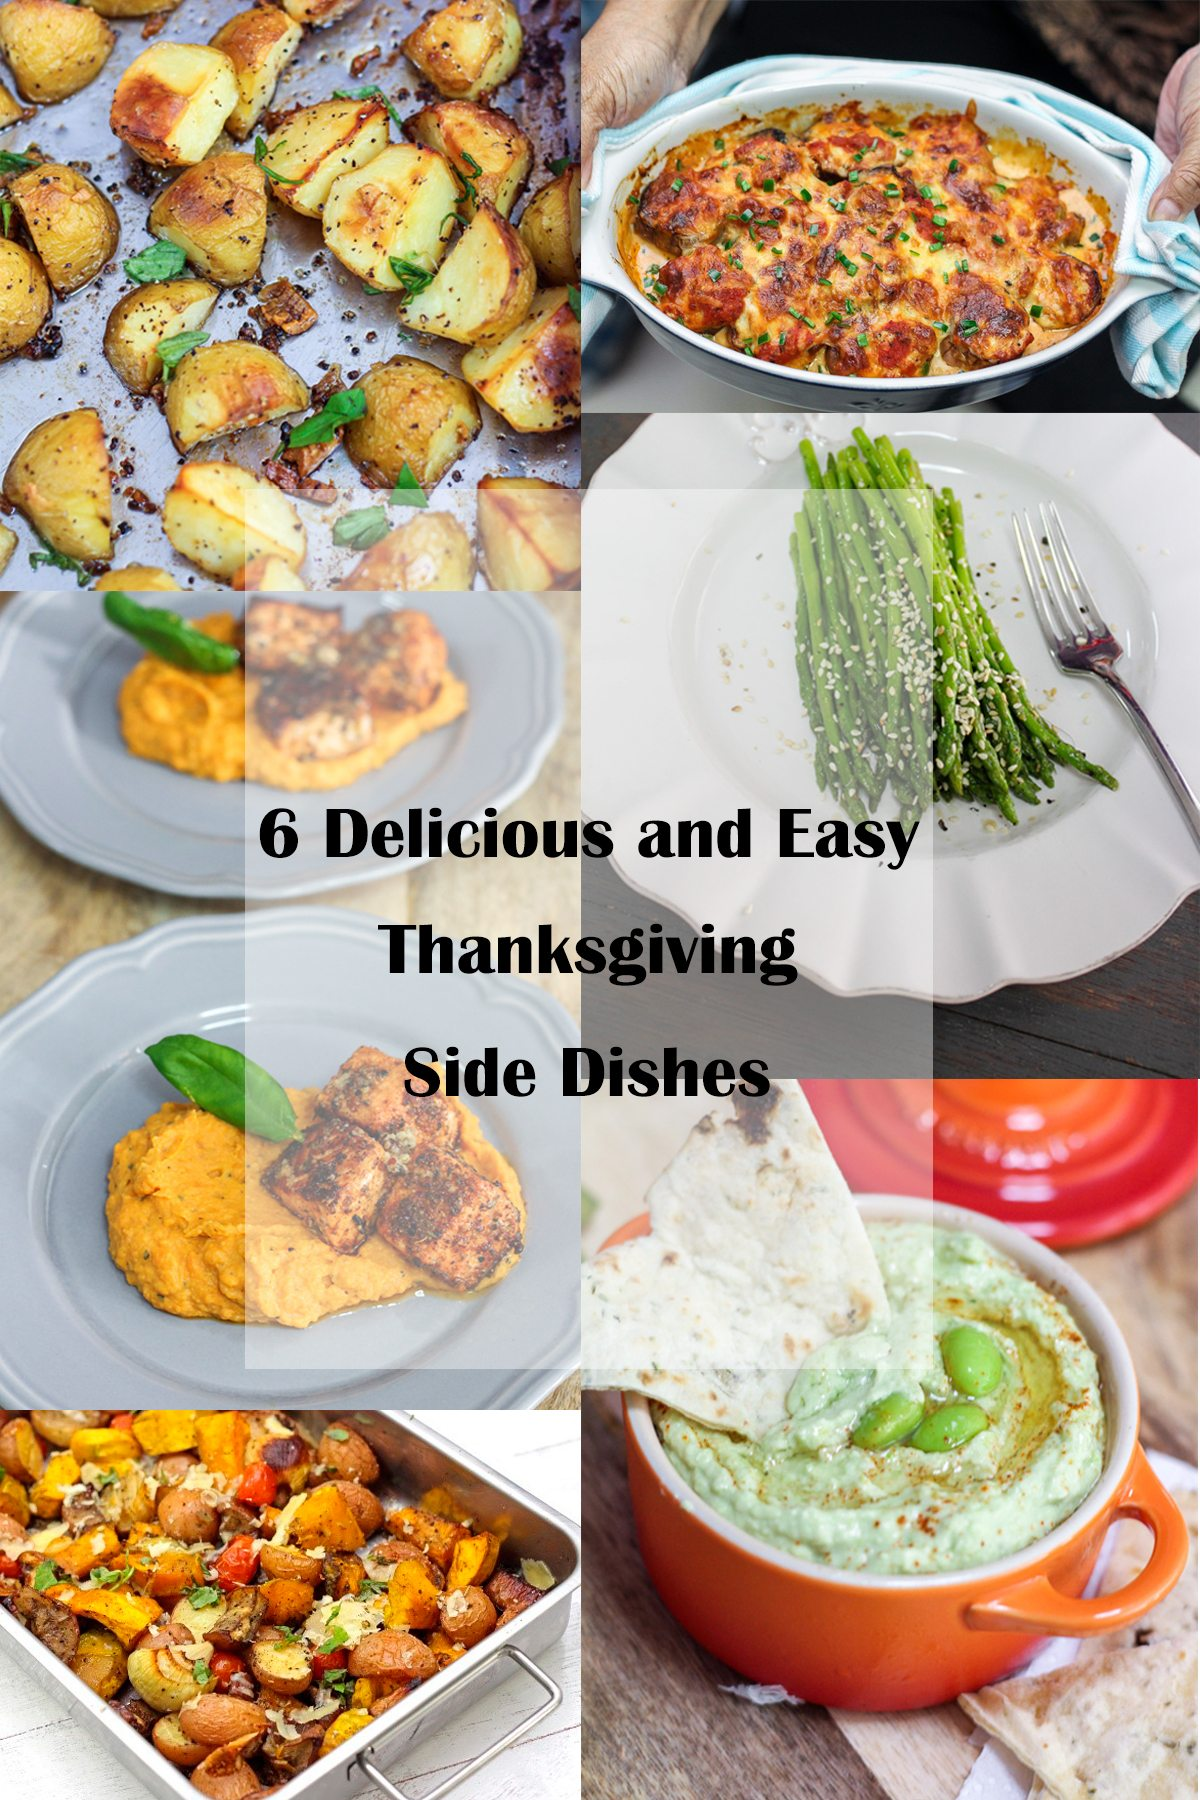 6 Delicious And Easy Thanksgiving Side Dishes